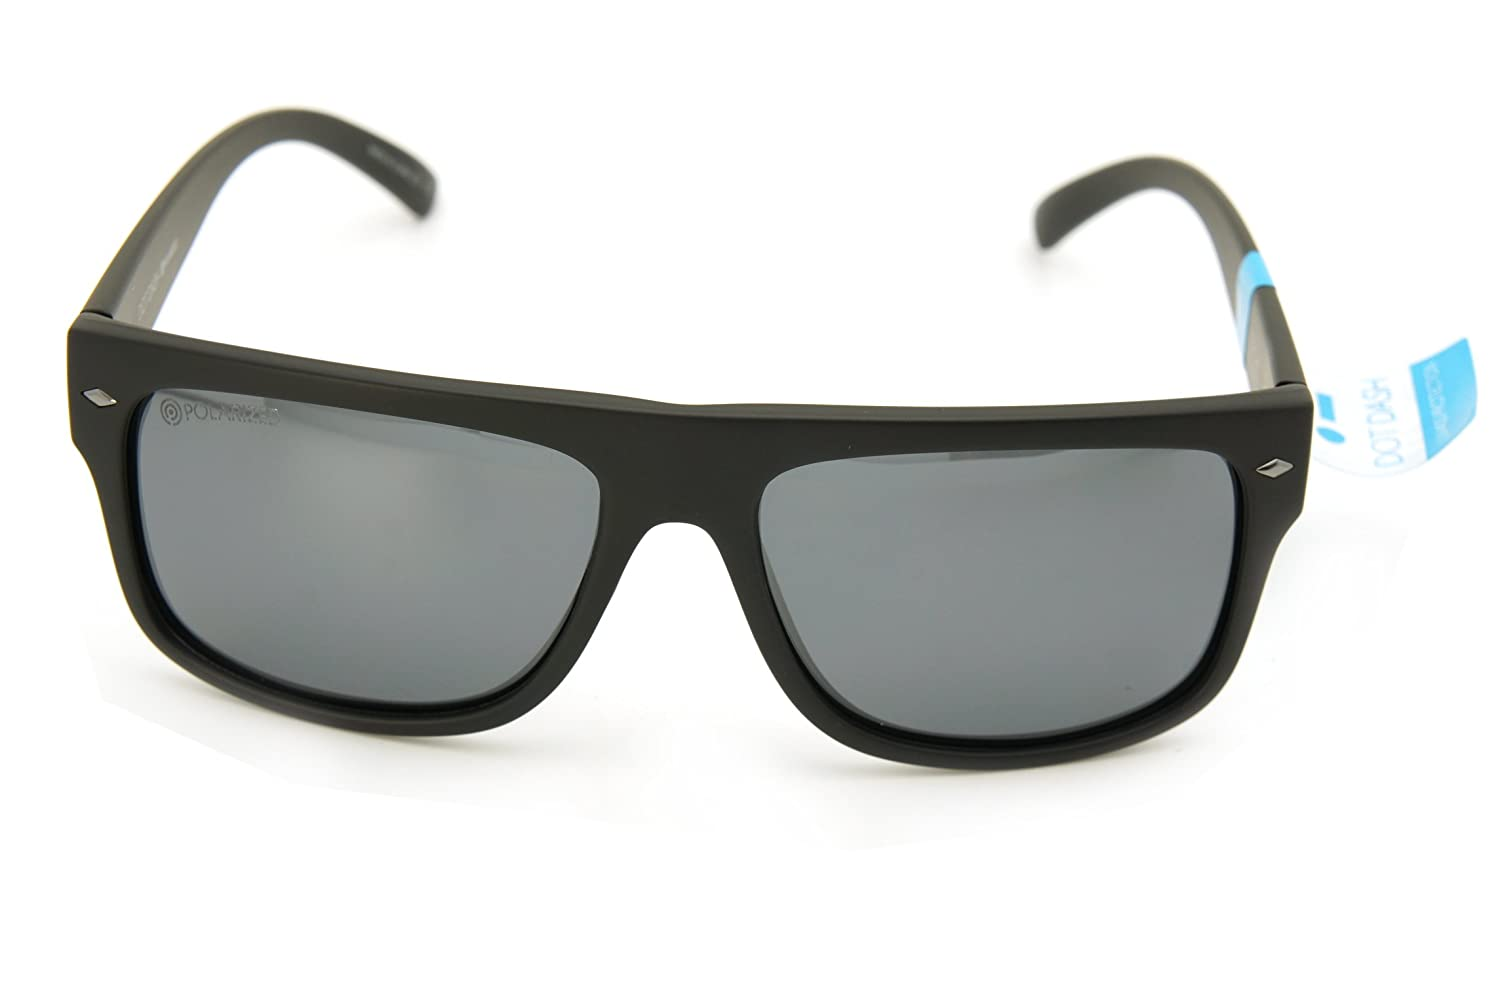 ab85a1fc108 Amazon.com  Dot Dash Sunglasses SIDECAR New color (matte black light silver  mirror lenses)  Clothing